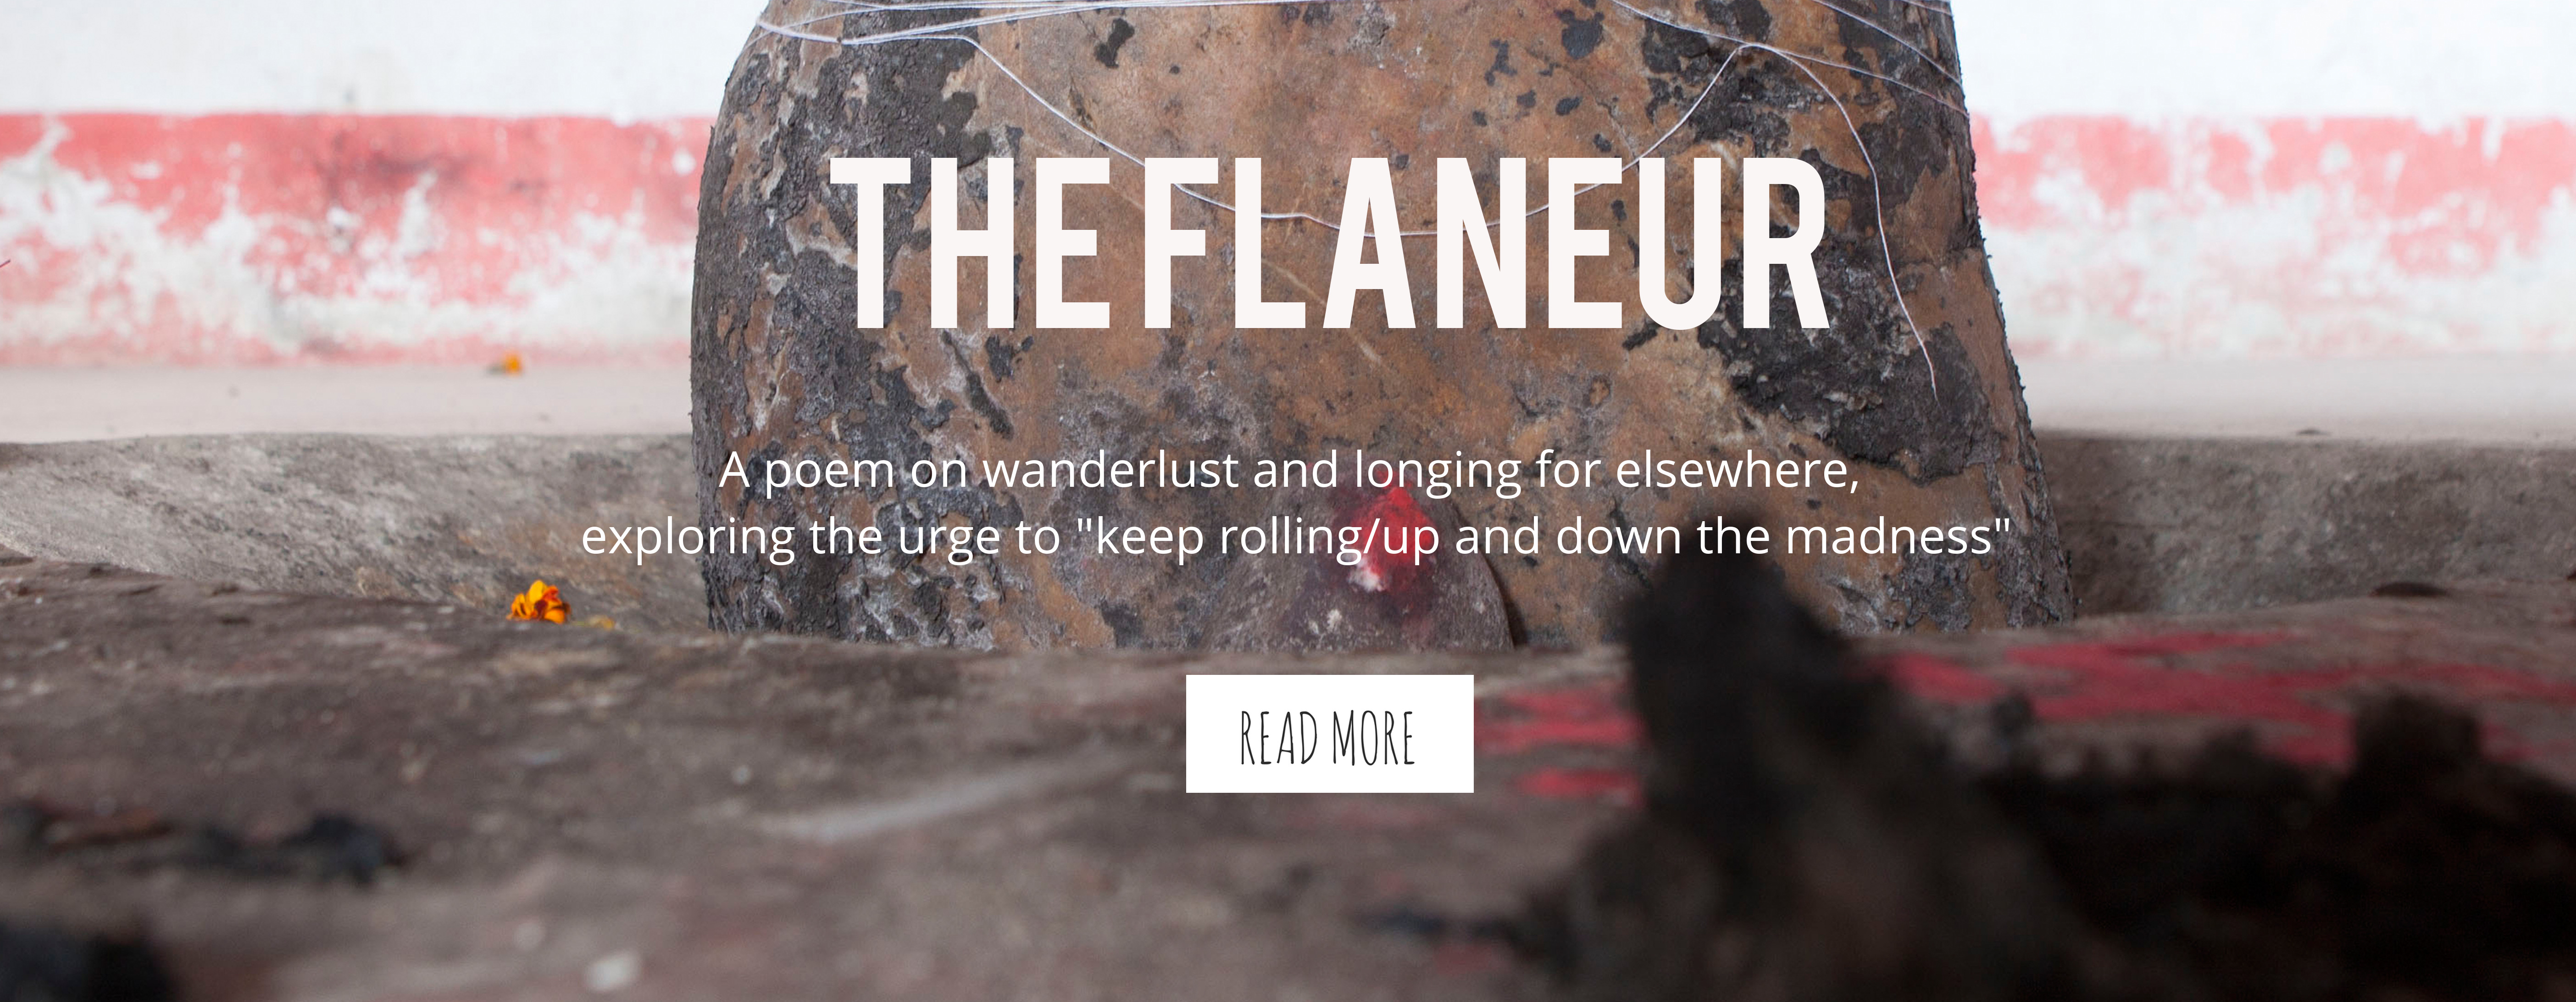 theflaneur-readmore2